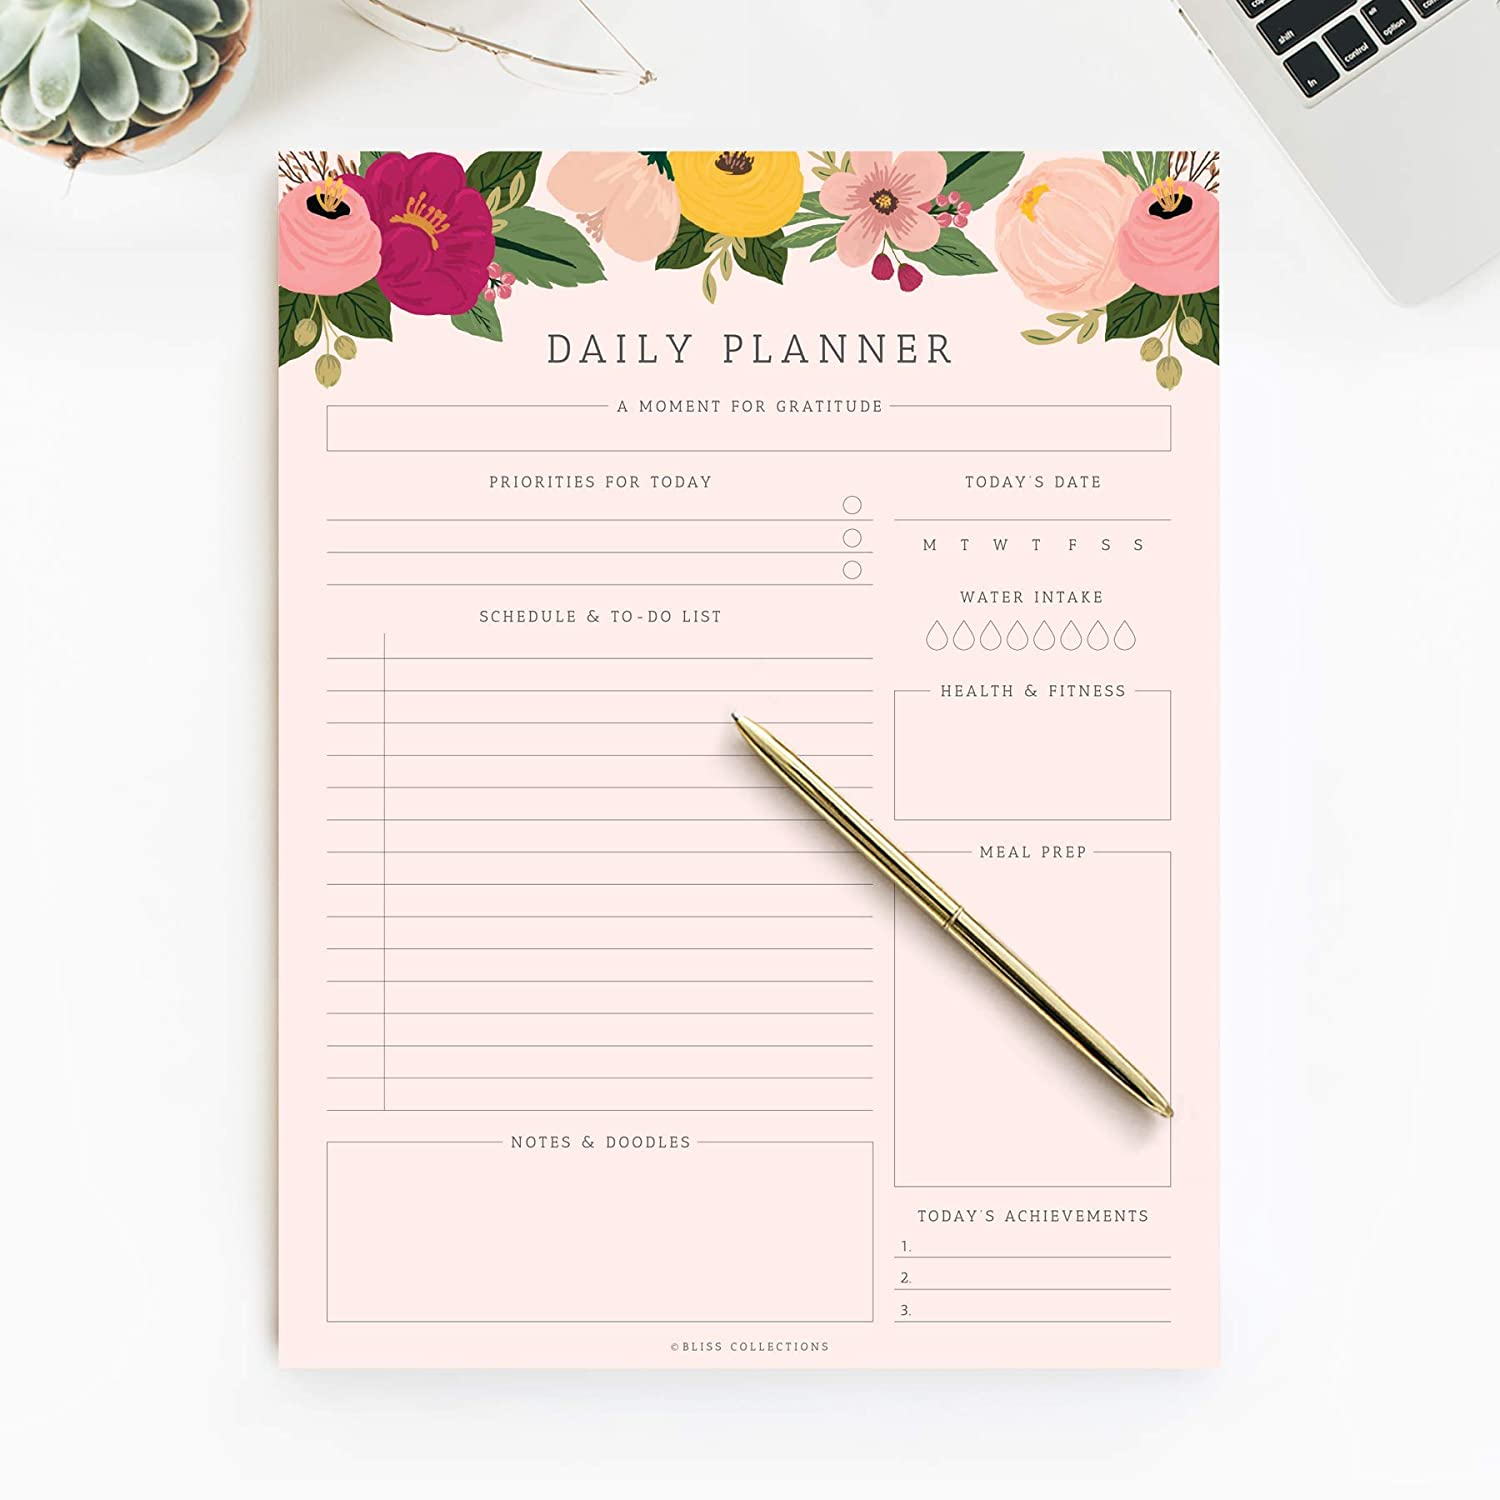 Bliss Collections Daily Planner, 50 Undated 8.5 x 11 Tear-Off Sheets, Blush Floral Calendar, Organizer, Scheduler, Productivity Tracker, Meal Prep, Organize Tasks, Goals, Notes, Ideas, to Do Lists